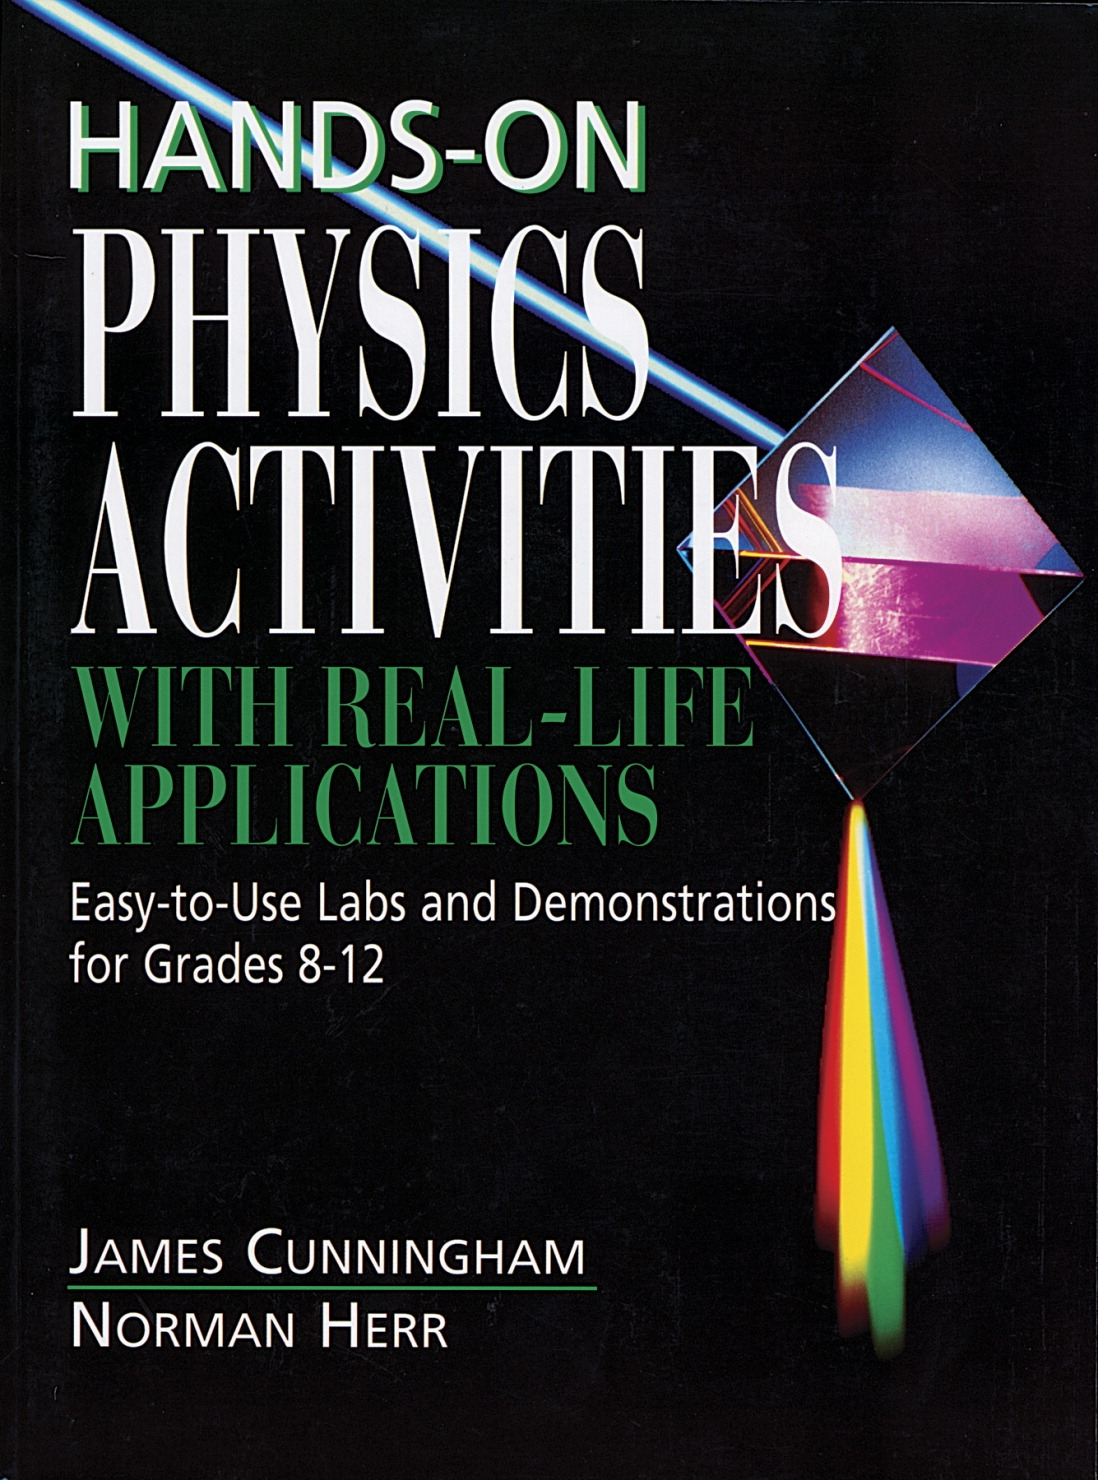 Hands-on Physics Activities Book - 532044 - Instructional Materials Resources Science Activities Equipment Physical Science Projects Books 532044